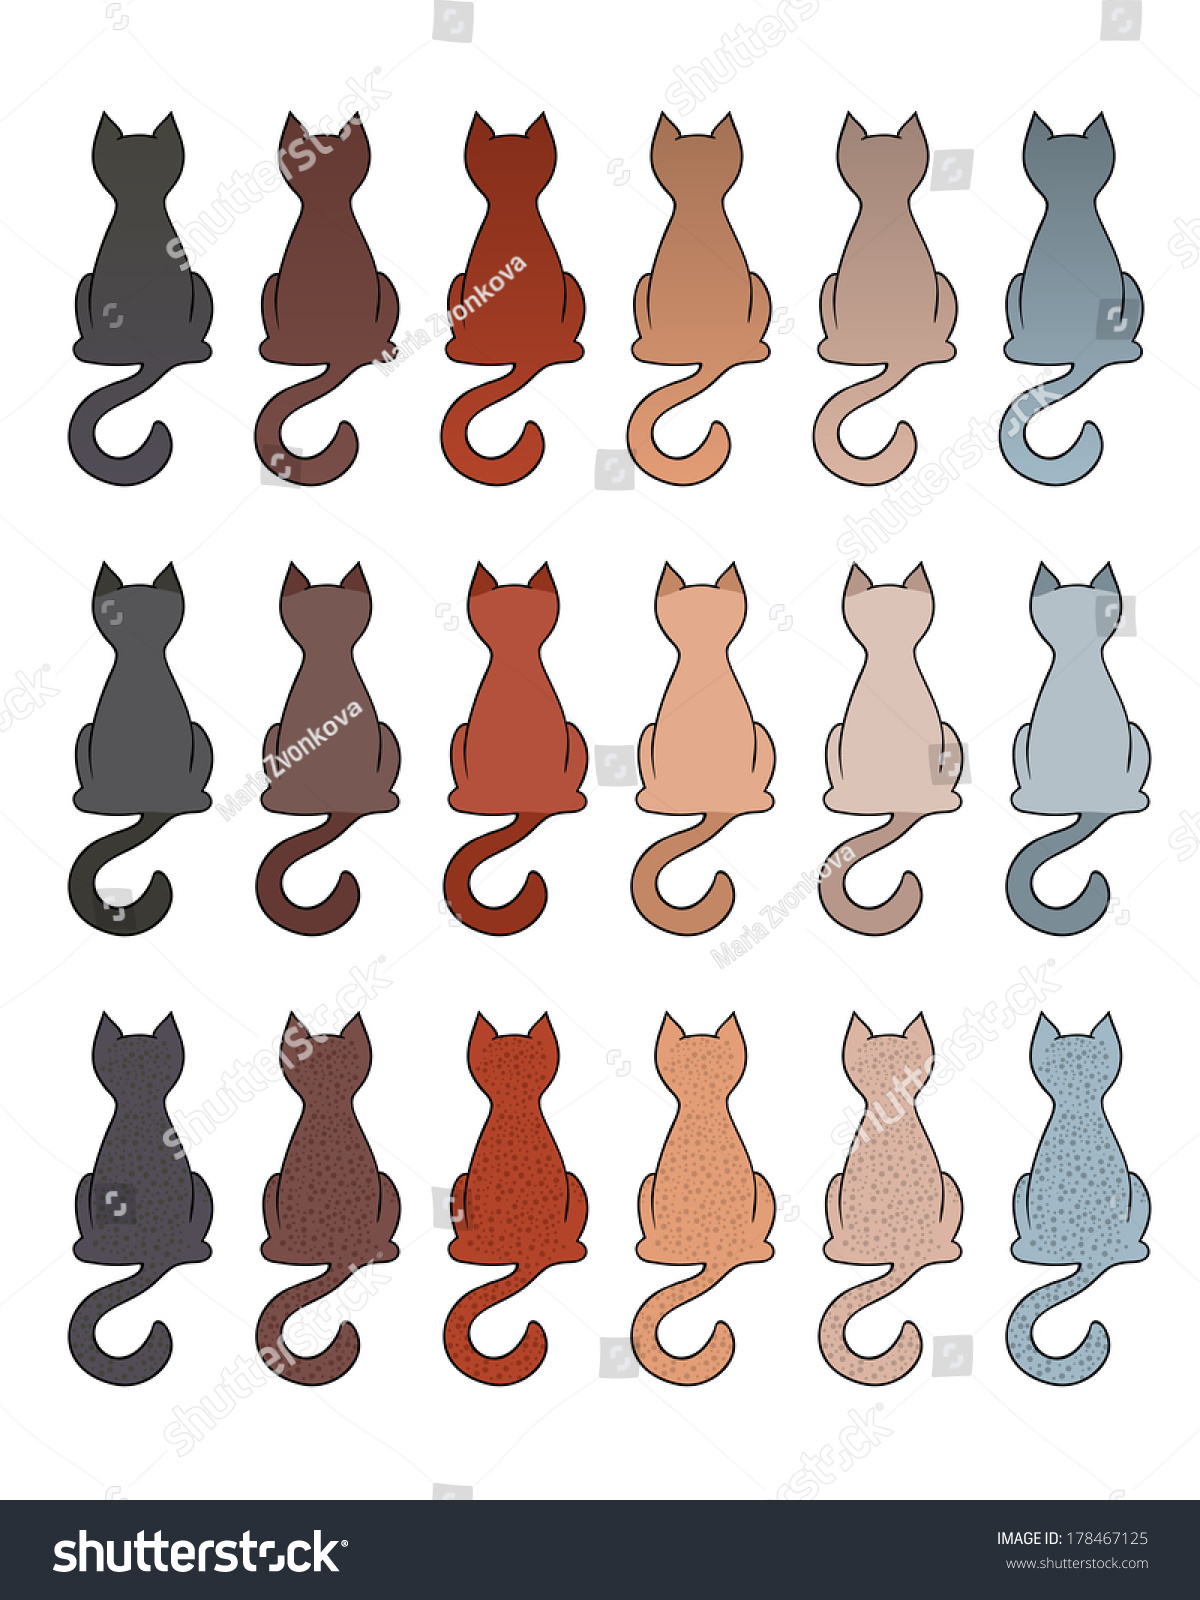 Color of cats fur - Color Of Cats Fur Set Of Cat Fur Color Coats Types Of Tabby In Different